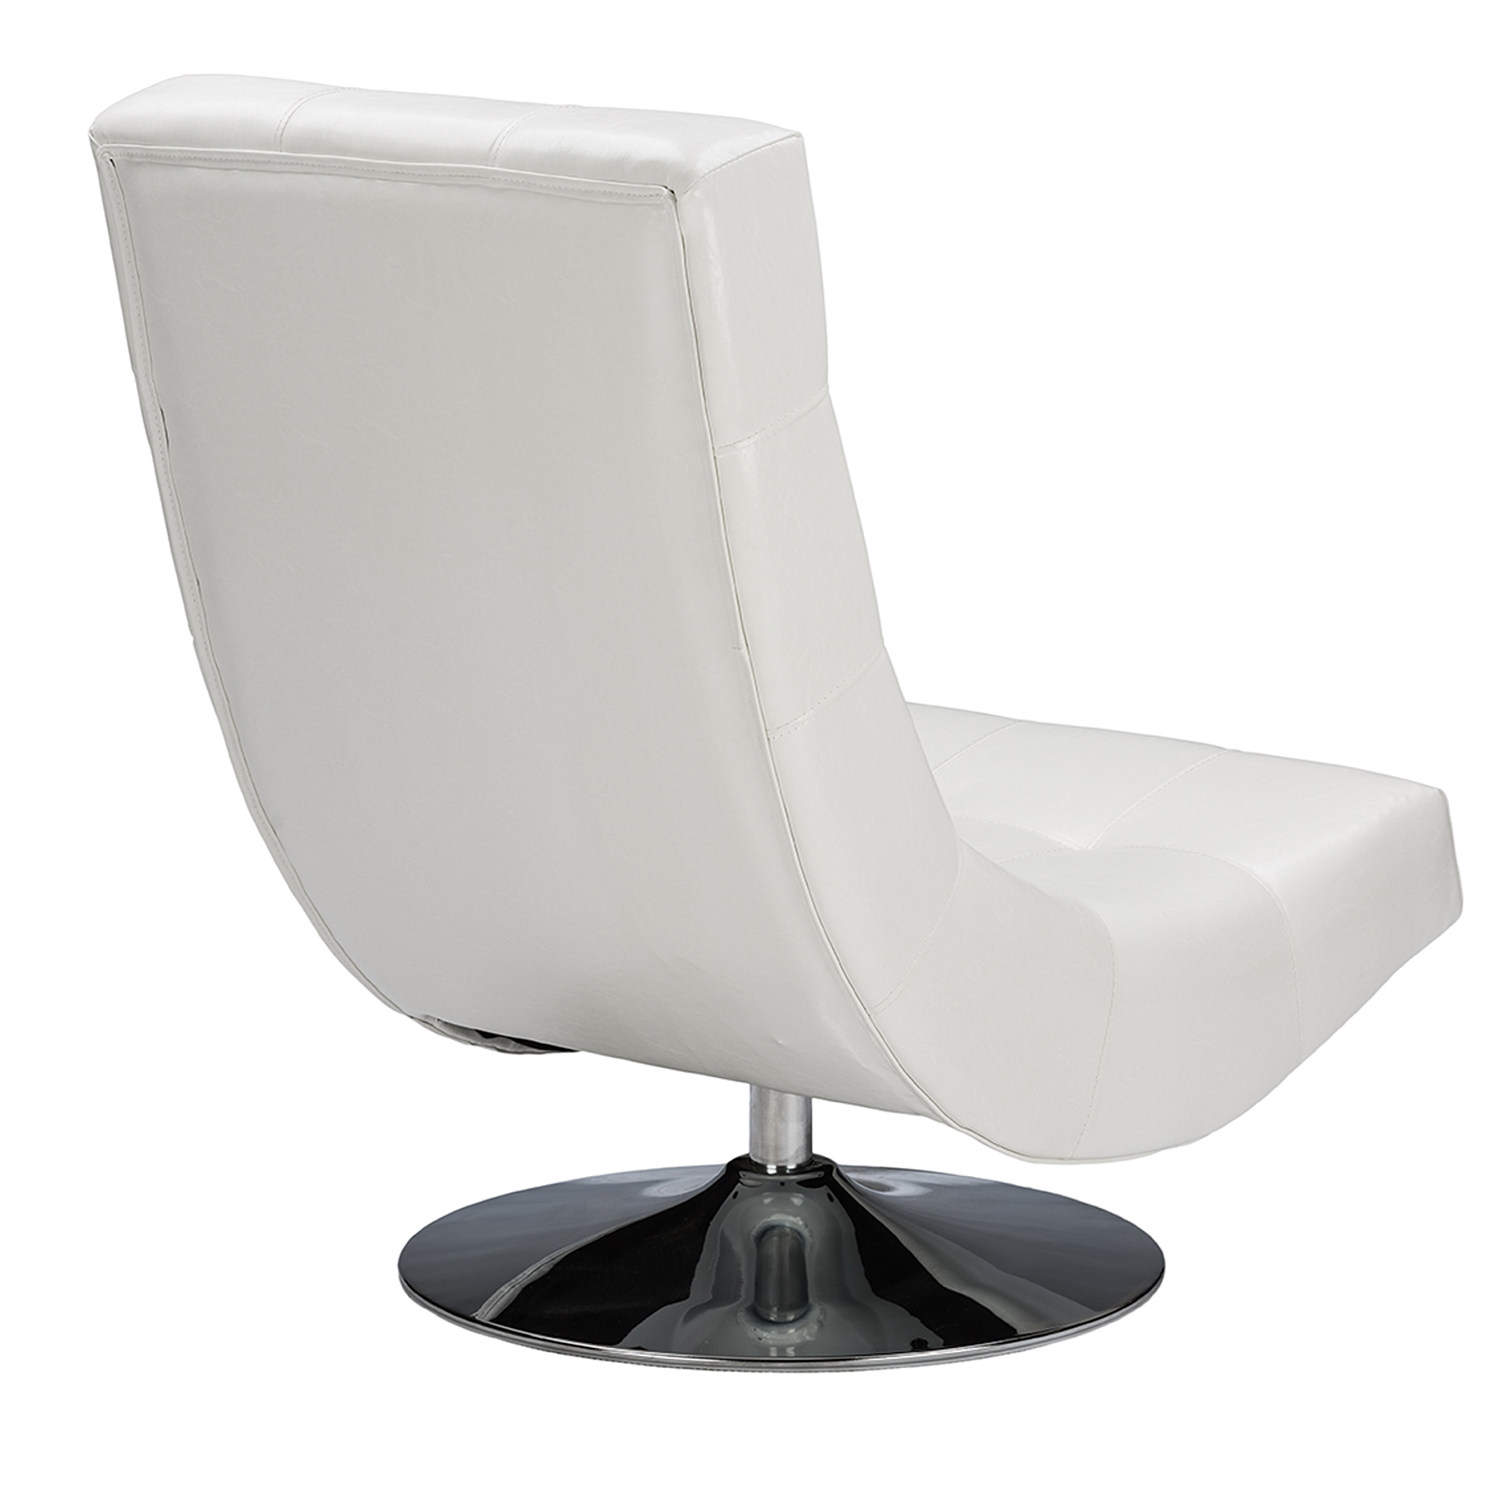 ... Baxton Studio Baxton Studio Elsa Modern And Contemporary White Faux  Leather Upholstered Swivel Chair With Metal ...